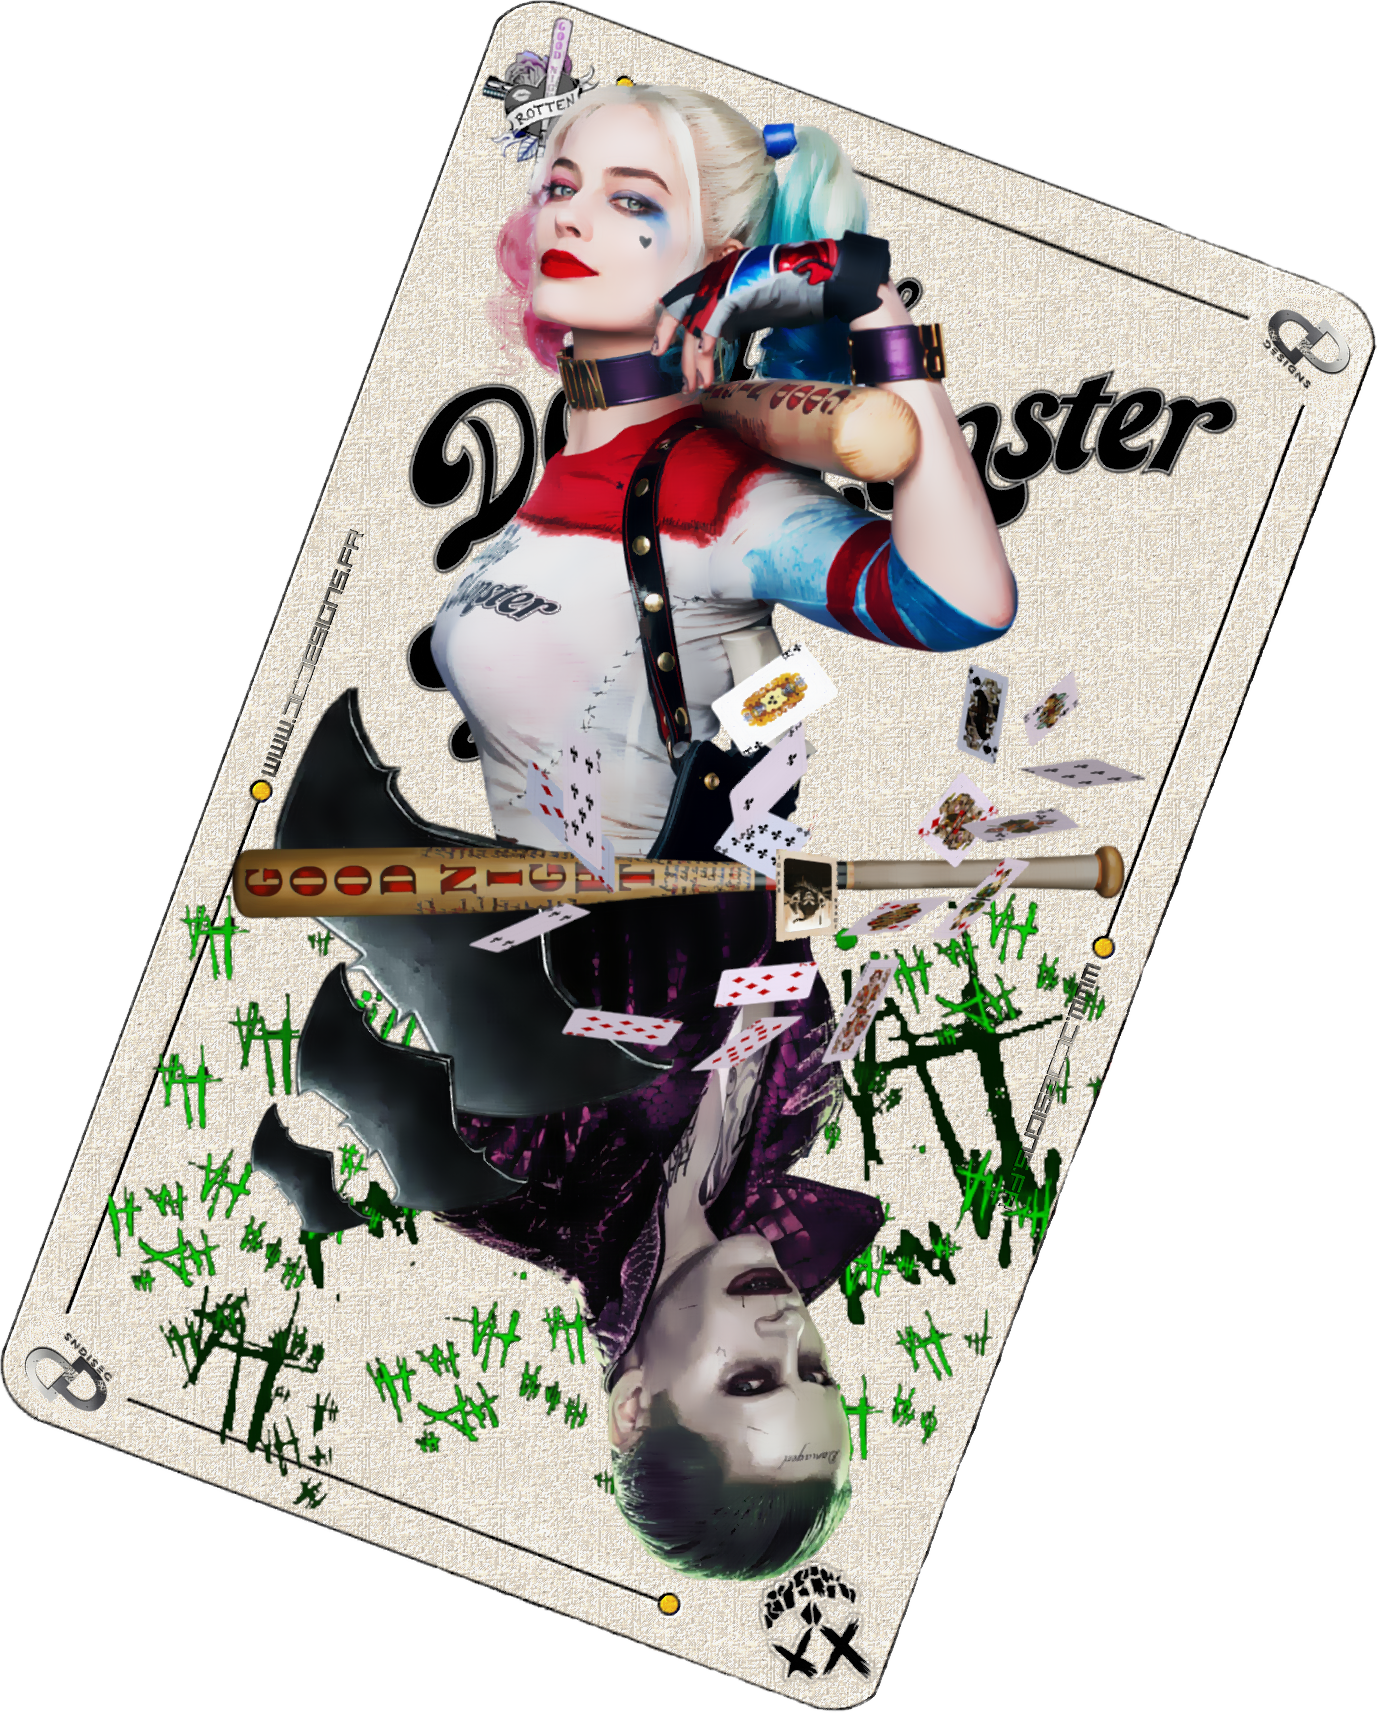 Download Freeuse Download Drawing Digitally Harley Quinn Joker Card Suicide Squad Png Image With No Background Pngkey Com